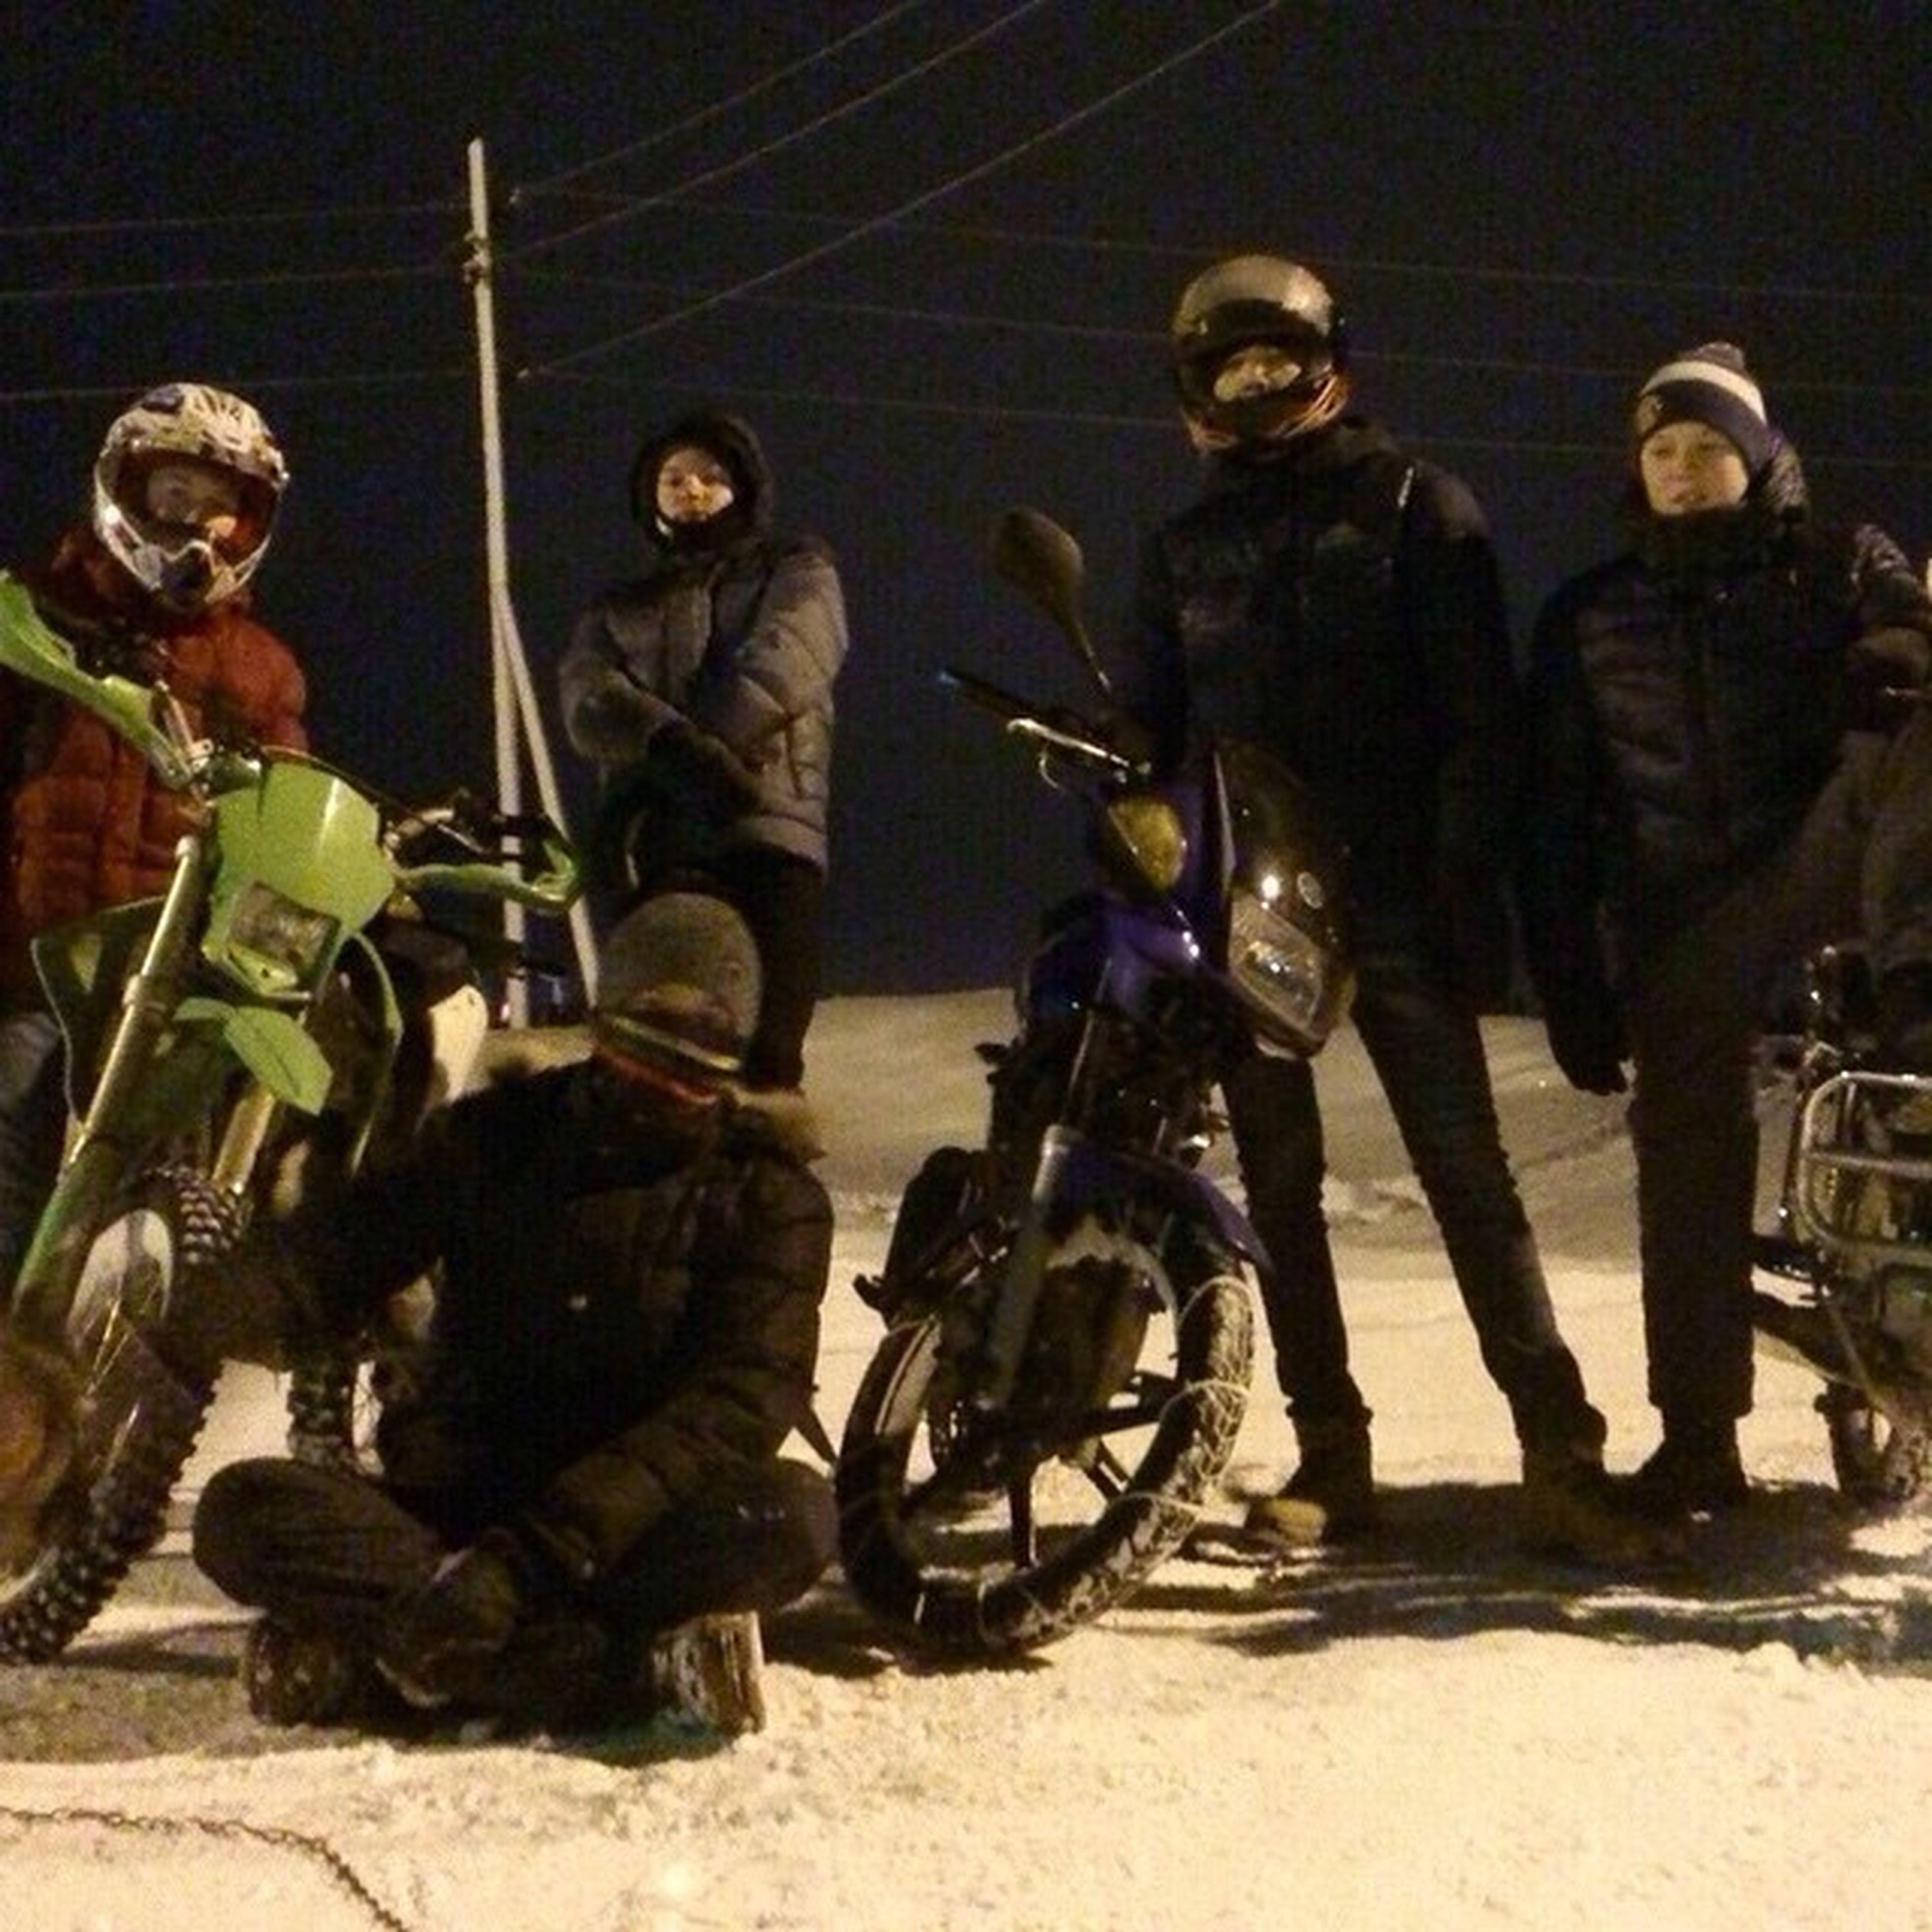 men, lifestyles, leisure activity, full length, bicycle, casual clothing, street, large group of people, transportation, land vehicle, helmet, person, riding, togetherness, mode of transport, motorcycle, outdoors, medium group of people